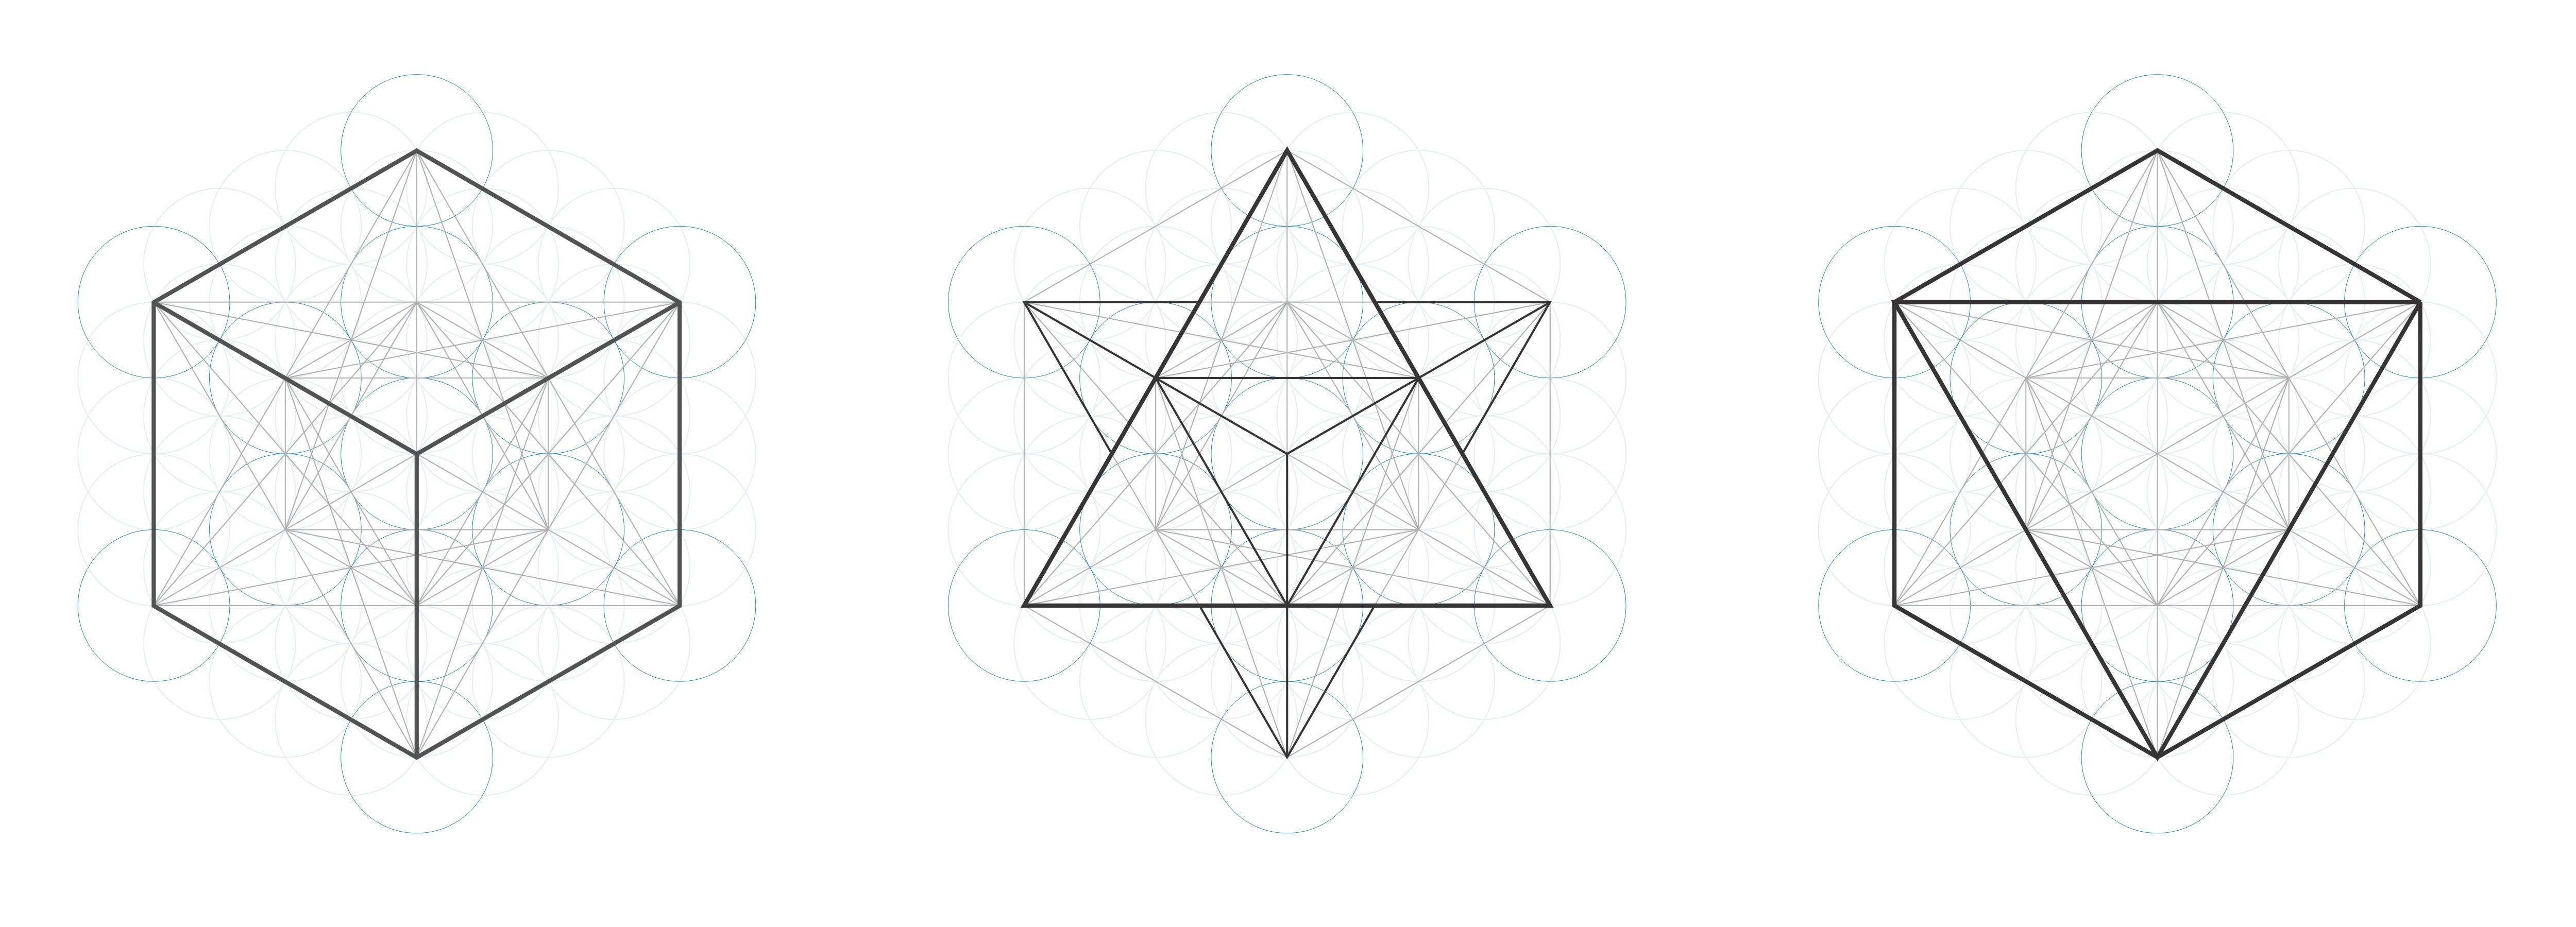 metatrons_cube_bluesketch_big1